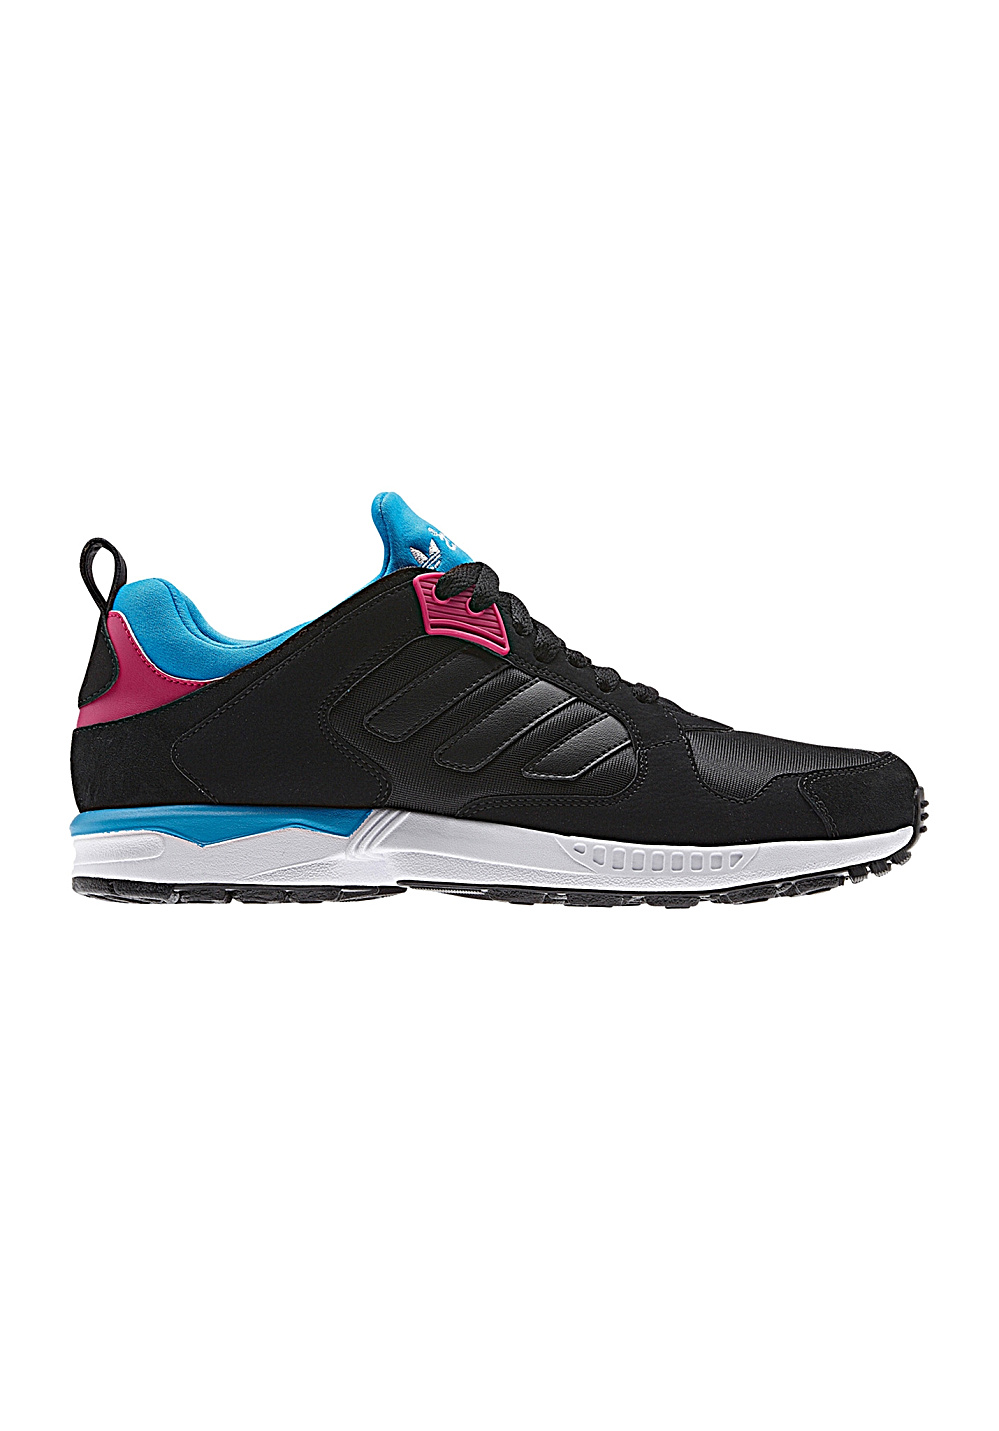 new styles c00d3 15302 ADIDAS ORIGINALS ZX 5000 RSPN - Sneakers for Men - Black